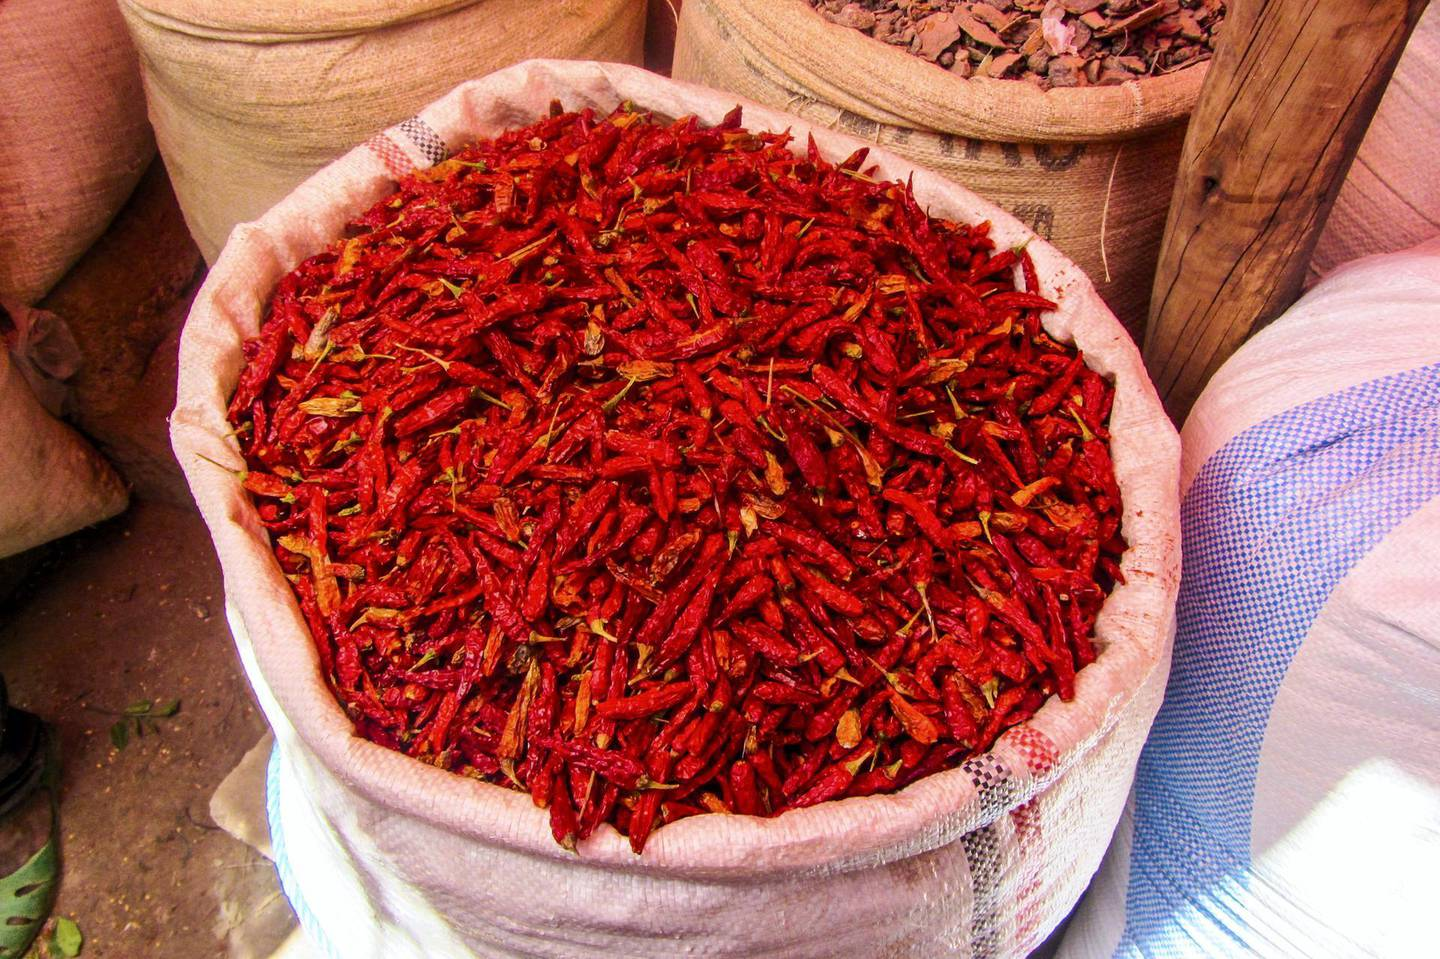 Hot peppers for sale in the markets of Harar, Ethiopia. (Photo by: Matthew Bailey/VWPics/UIG via Getty Images)